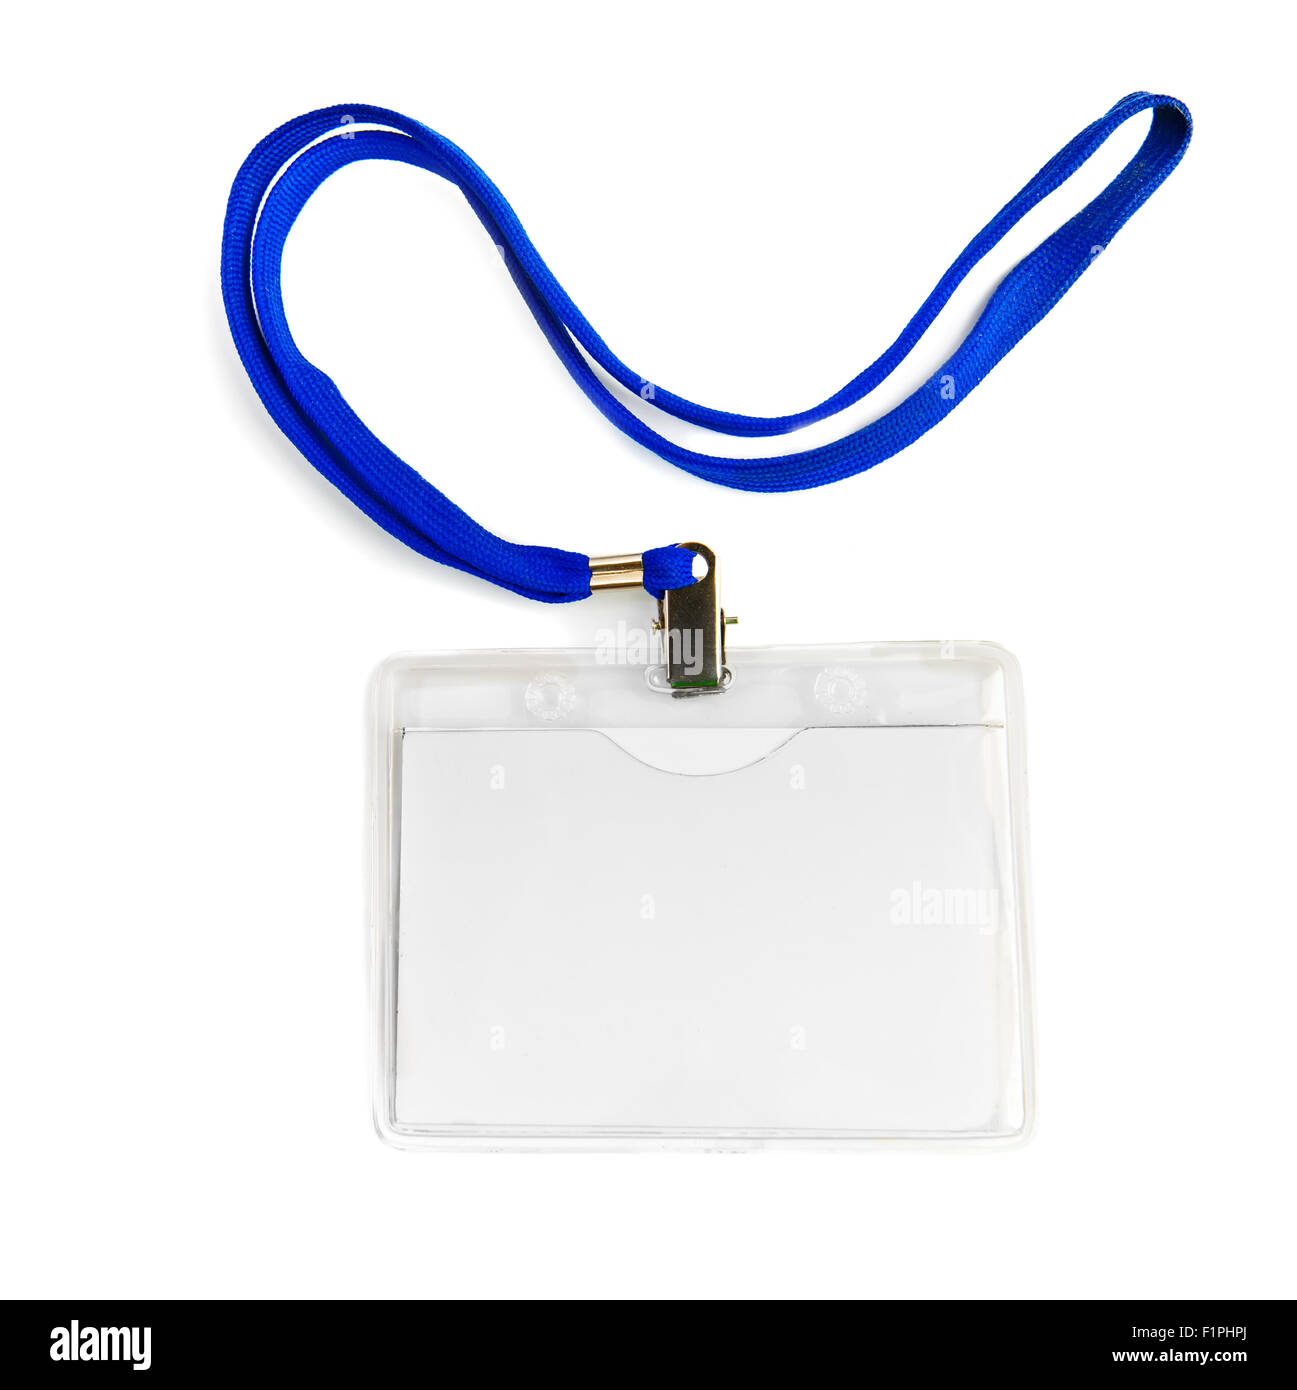 Name id card badge with cord (rope) isolated - Stock Image